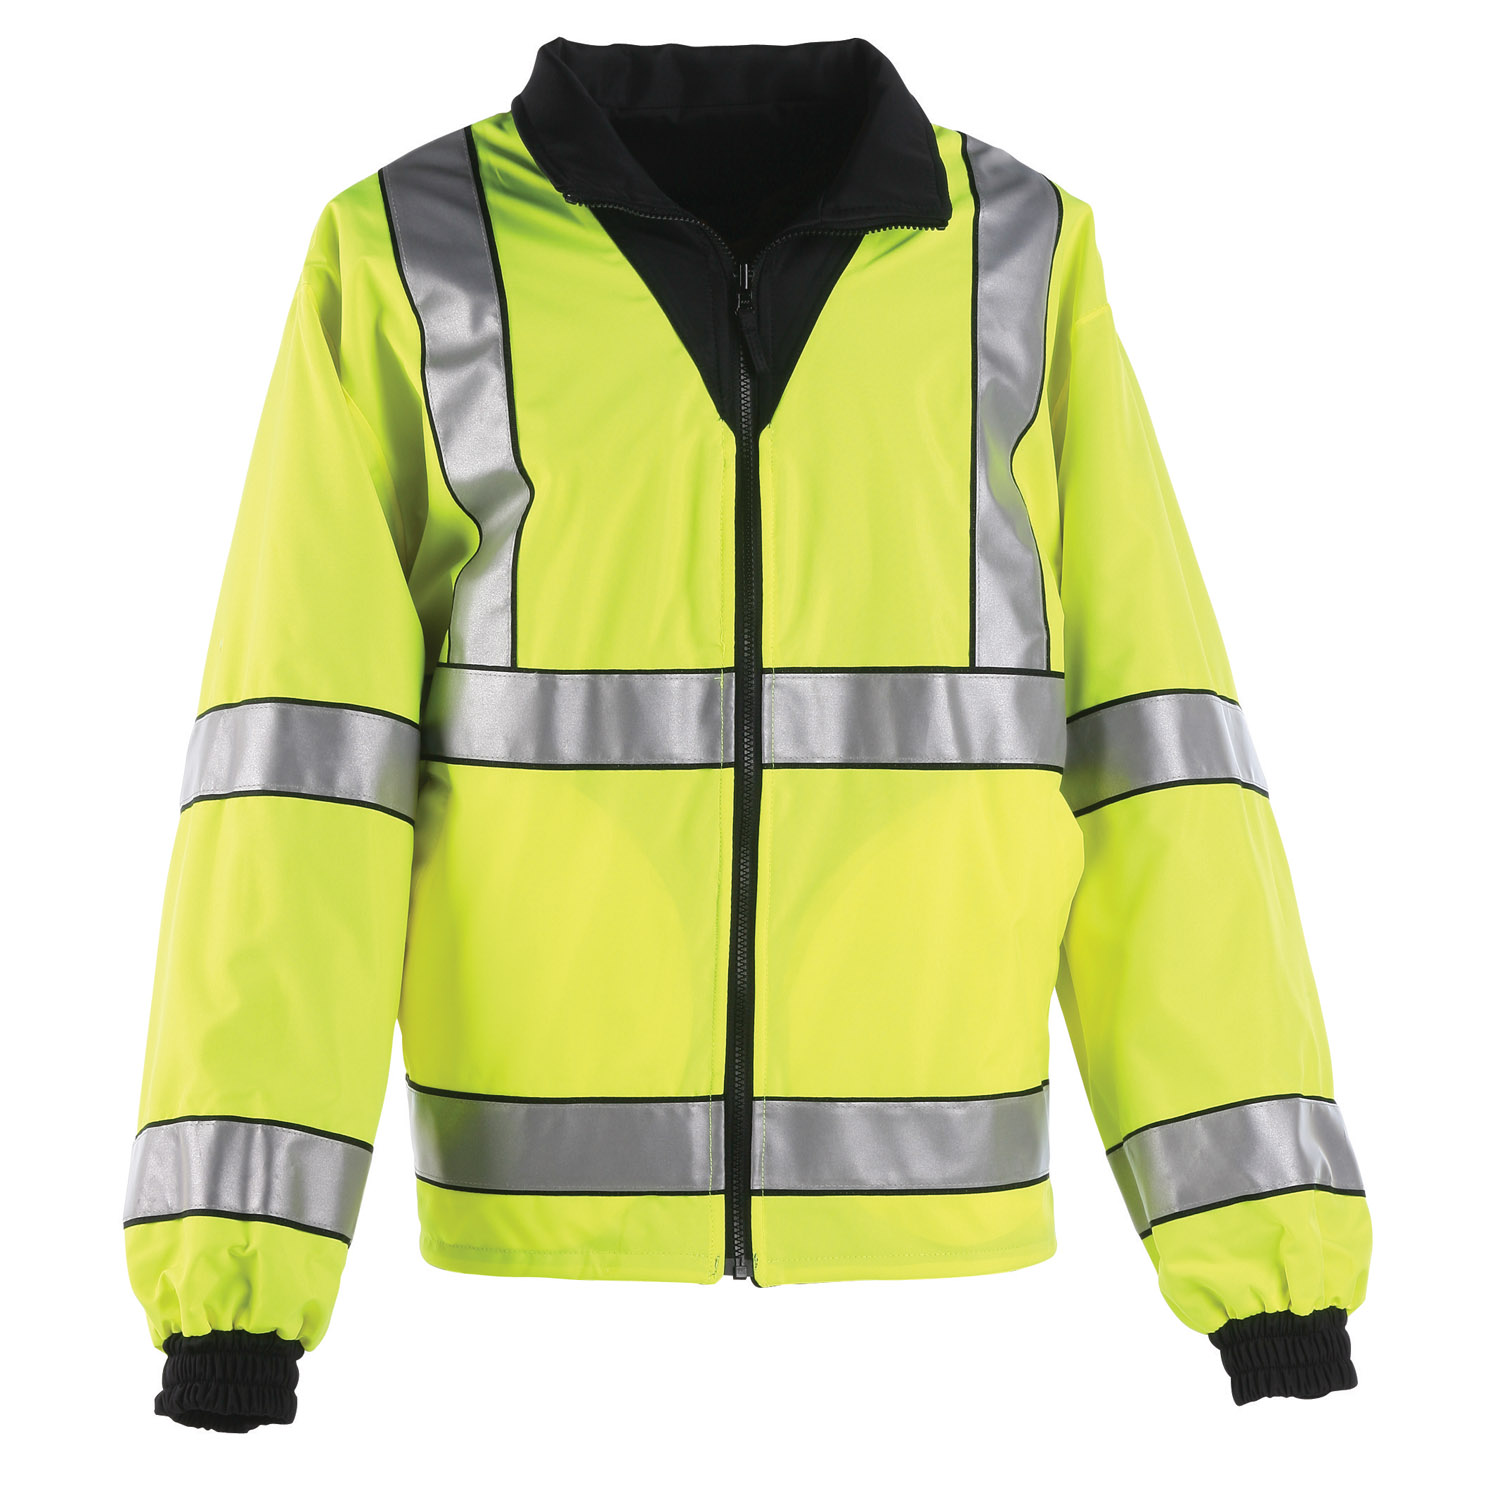 Anchor Hi-Viz Reversible Fleece Jacket